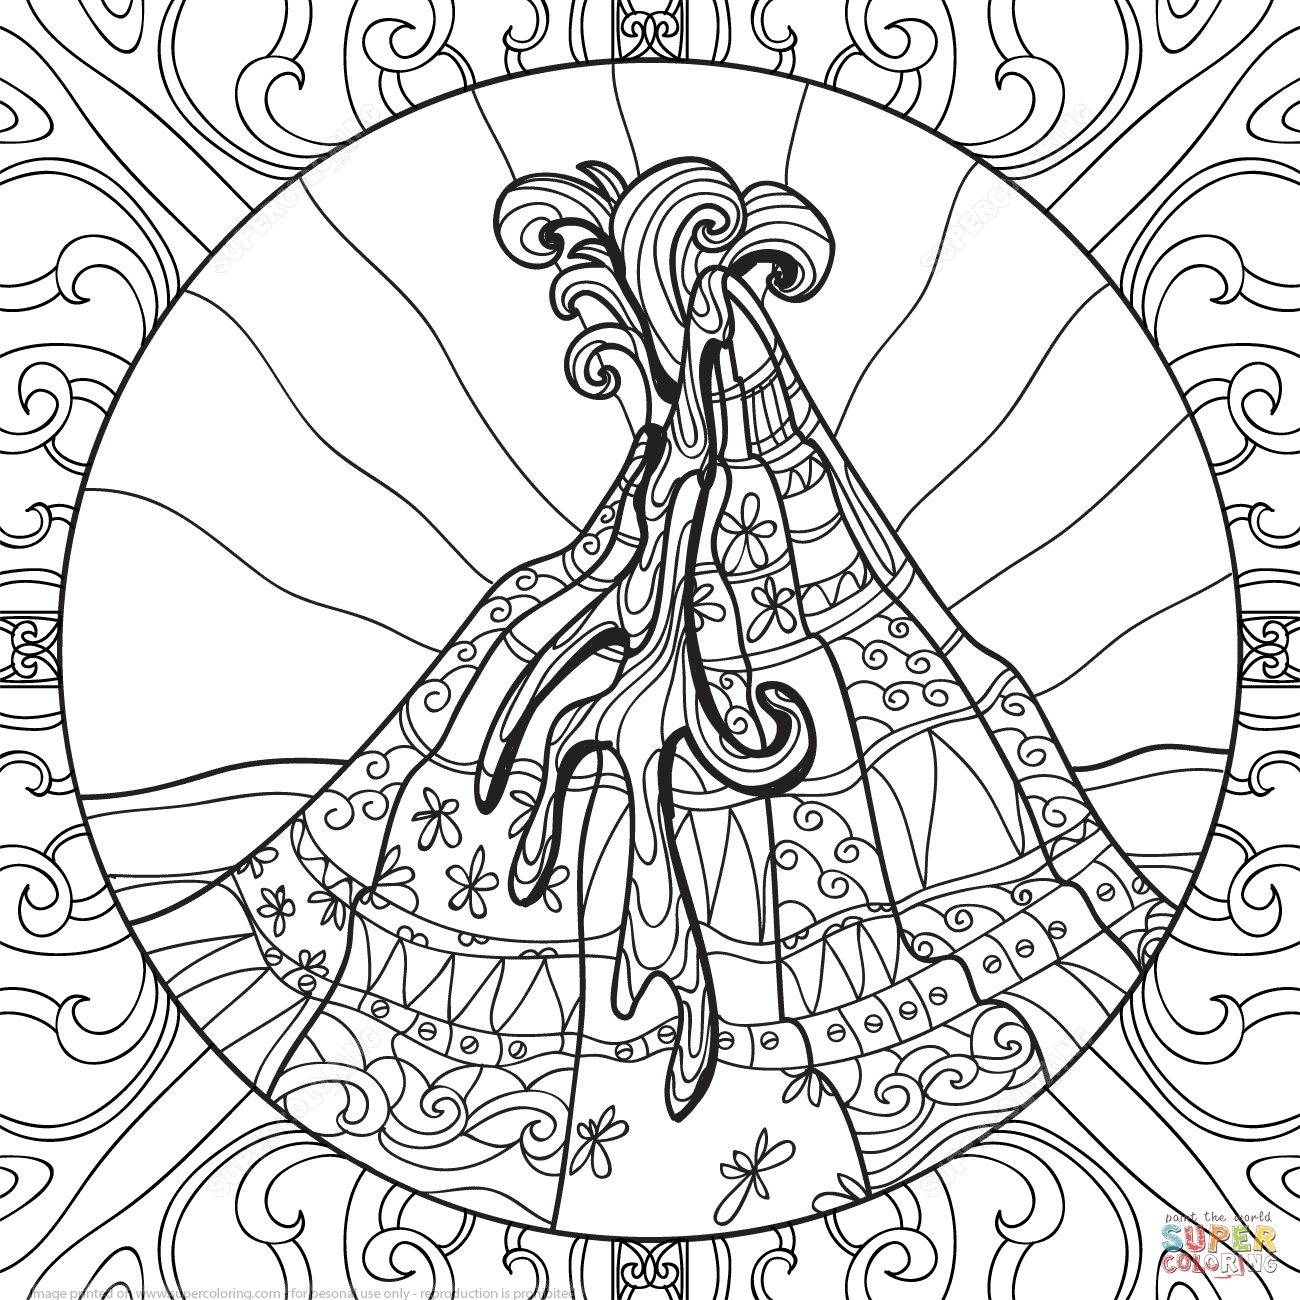 1300x1300 Printable Zentangle Coloring Pages Free Coloring Pages Download